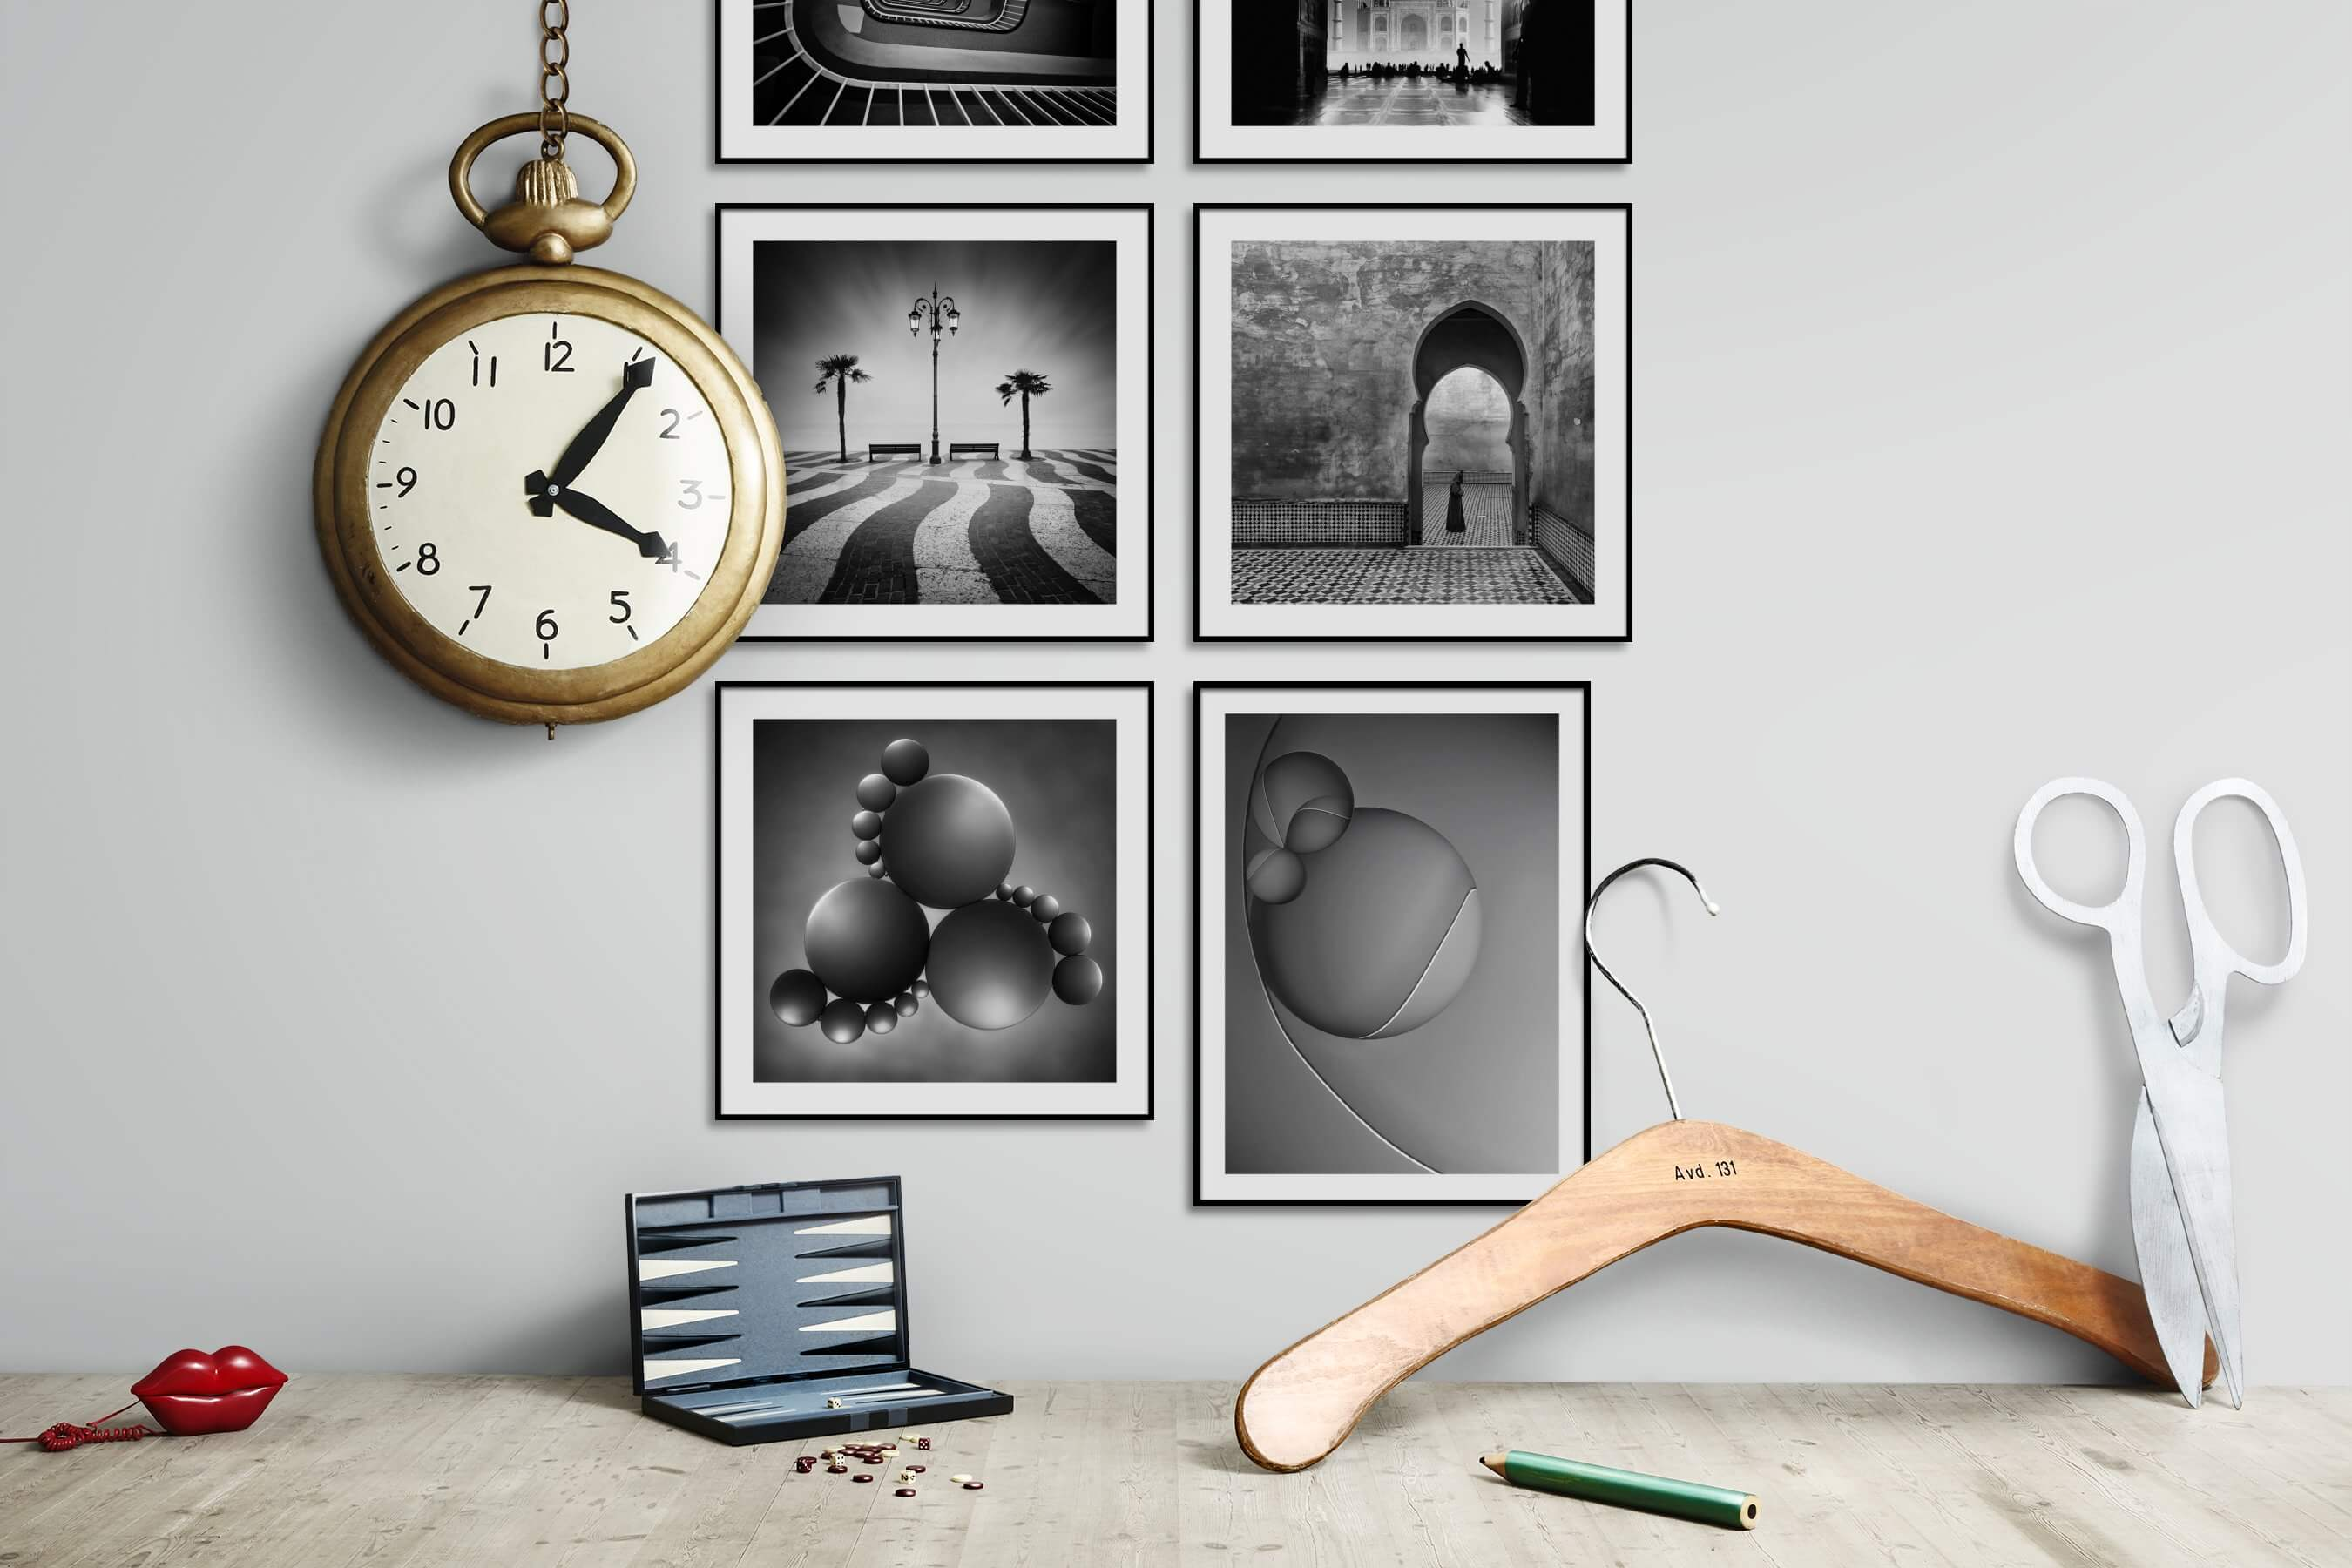 Gallery wall idea with six framed pictures arranged on a wall depicting Black & White, For the Moderate, Artsy, and For the Minimalist